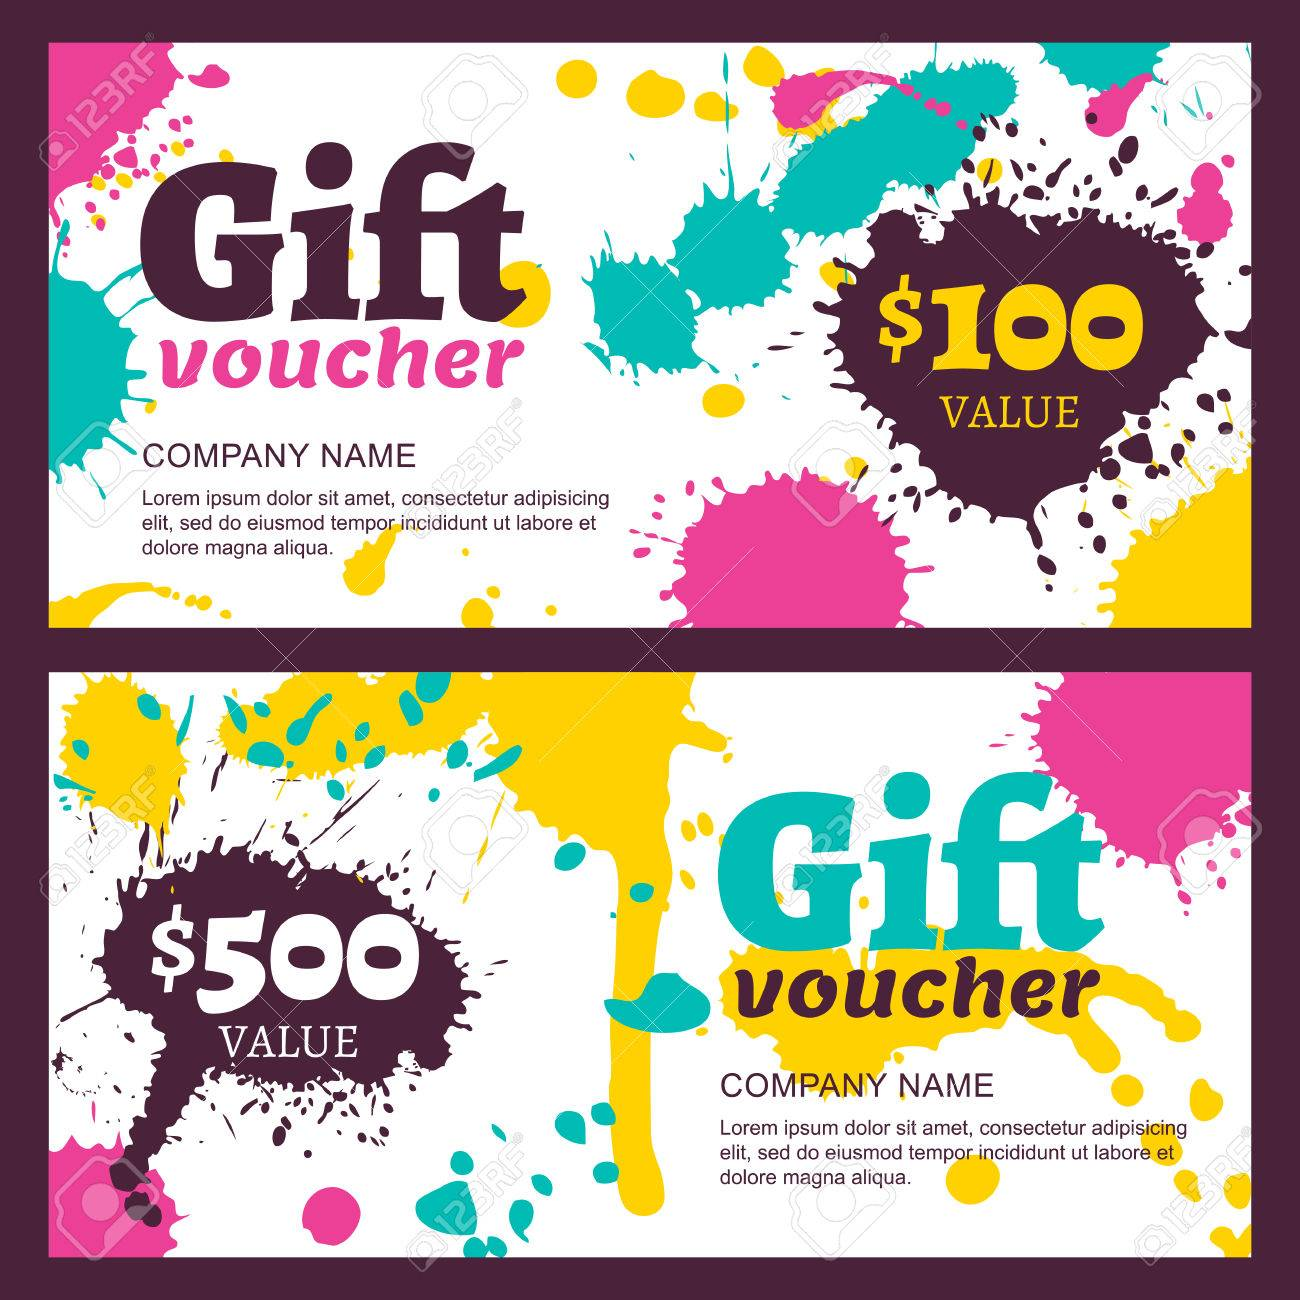 Vector gift voucher with watercolor colorful splashes blots business card template abstract creative background for gift card concept for boutique fashion shop flyer banner design reheart Choice Image